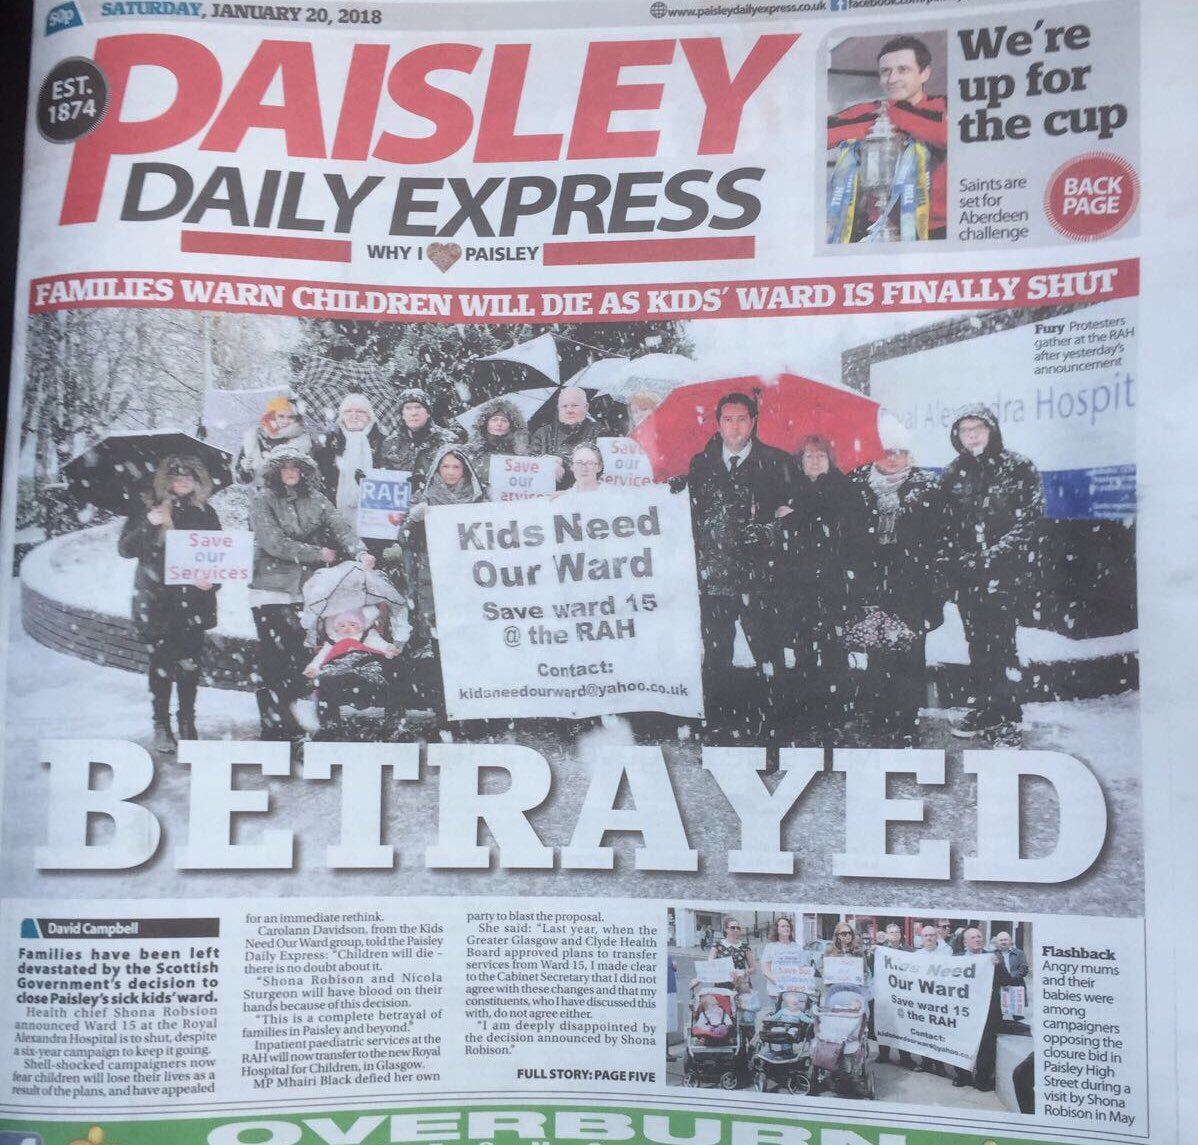 Paisley Sport - Latest news, reaction, results, pictures, video - Daily Paisley daily express pictures